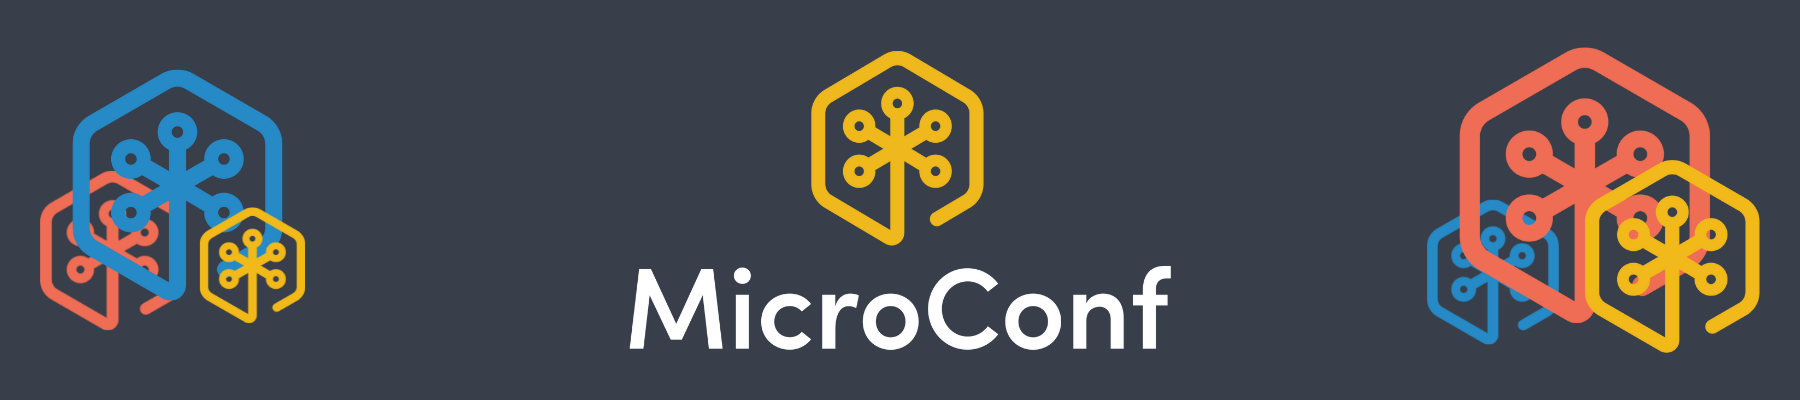 MicroConf - Where Independent SaaS Founders Launch, Meet,  Learn, and Grow